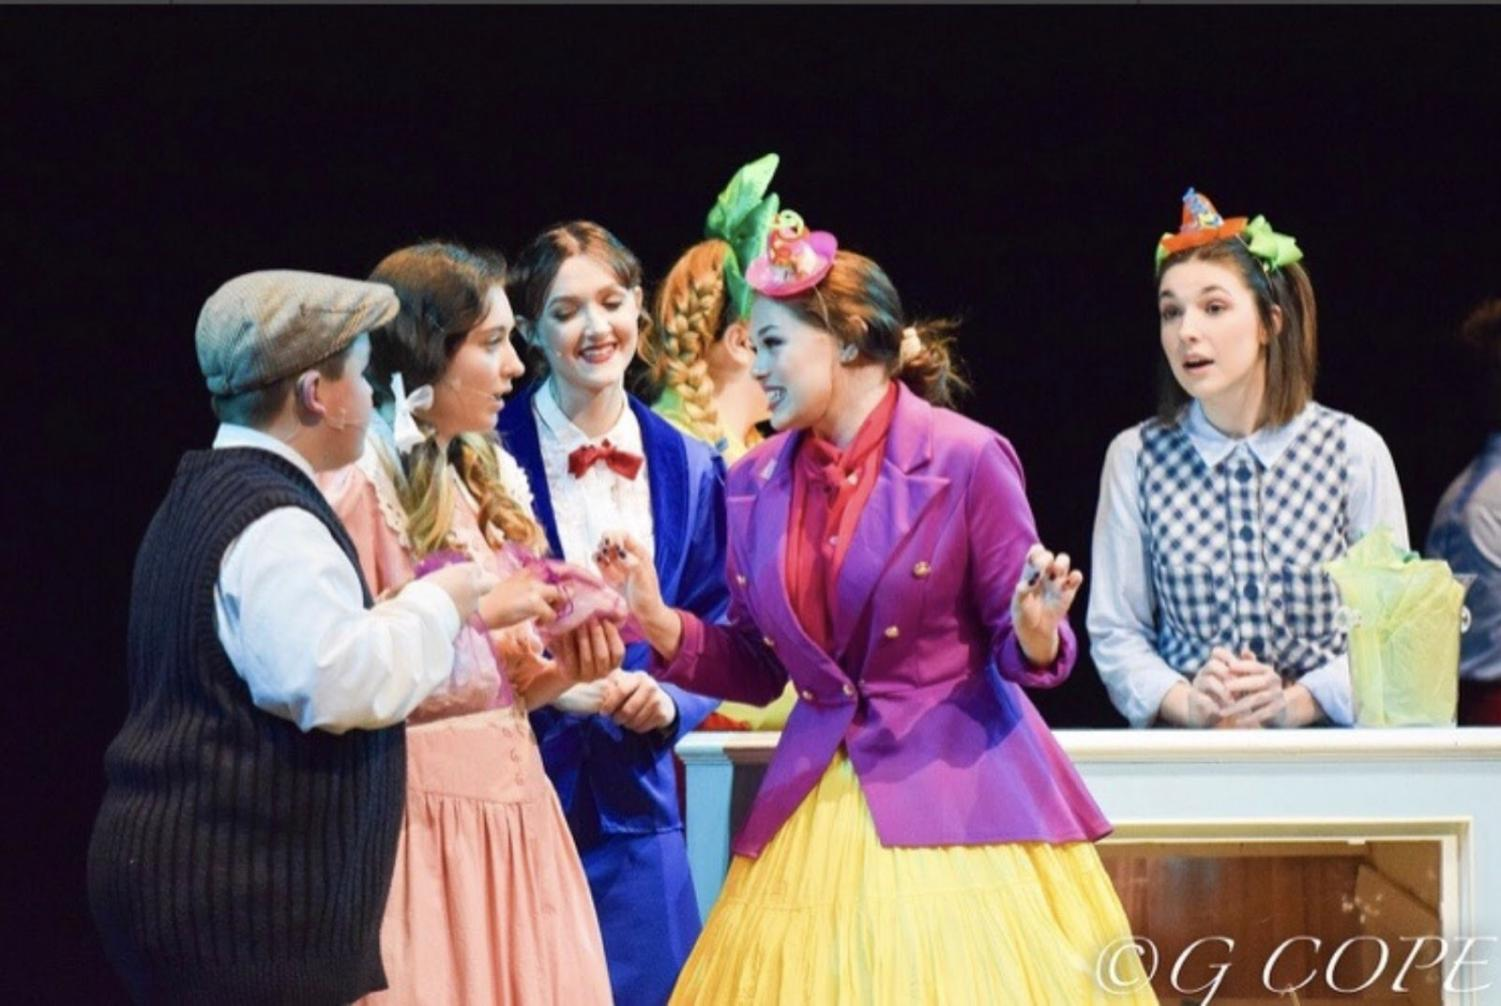 Performing in last spring's musical, Natalie Kincaid starred as Mr. Corry alongside Andrew Bonsted, Riley Yates, Kelly Garrett, and Lanie Winkler in Millbrook's spring musical, Mary Poppins. With Natalie's stage presence, Mary Poppins will surely be remembered!